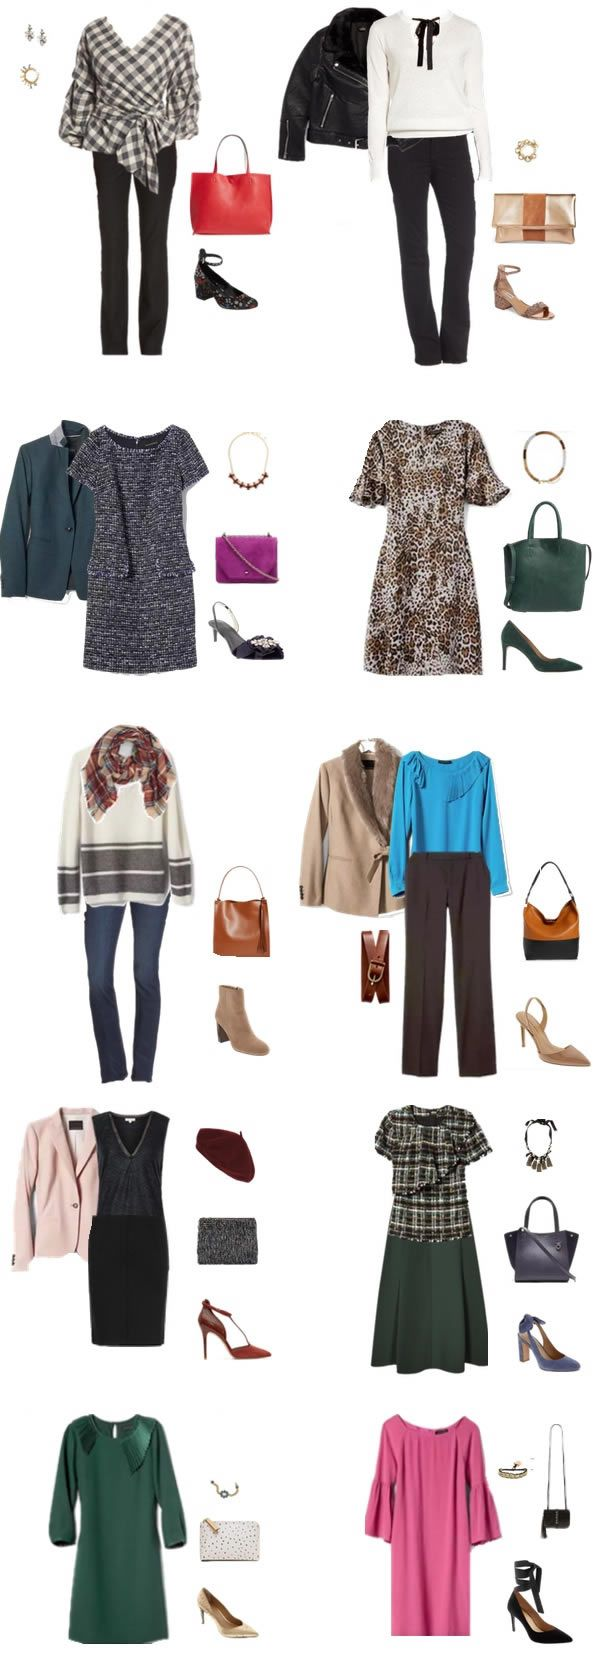 How to dress the rectangle body shape  |   40  Style